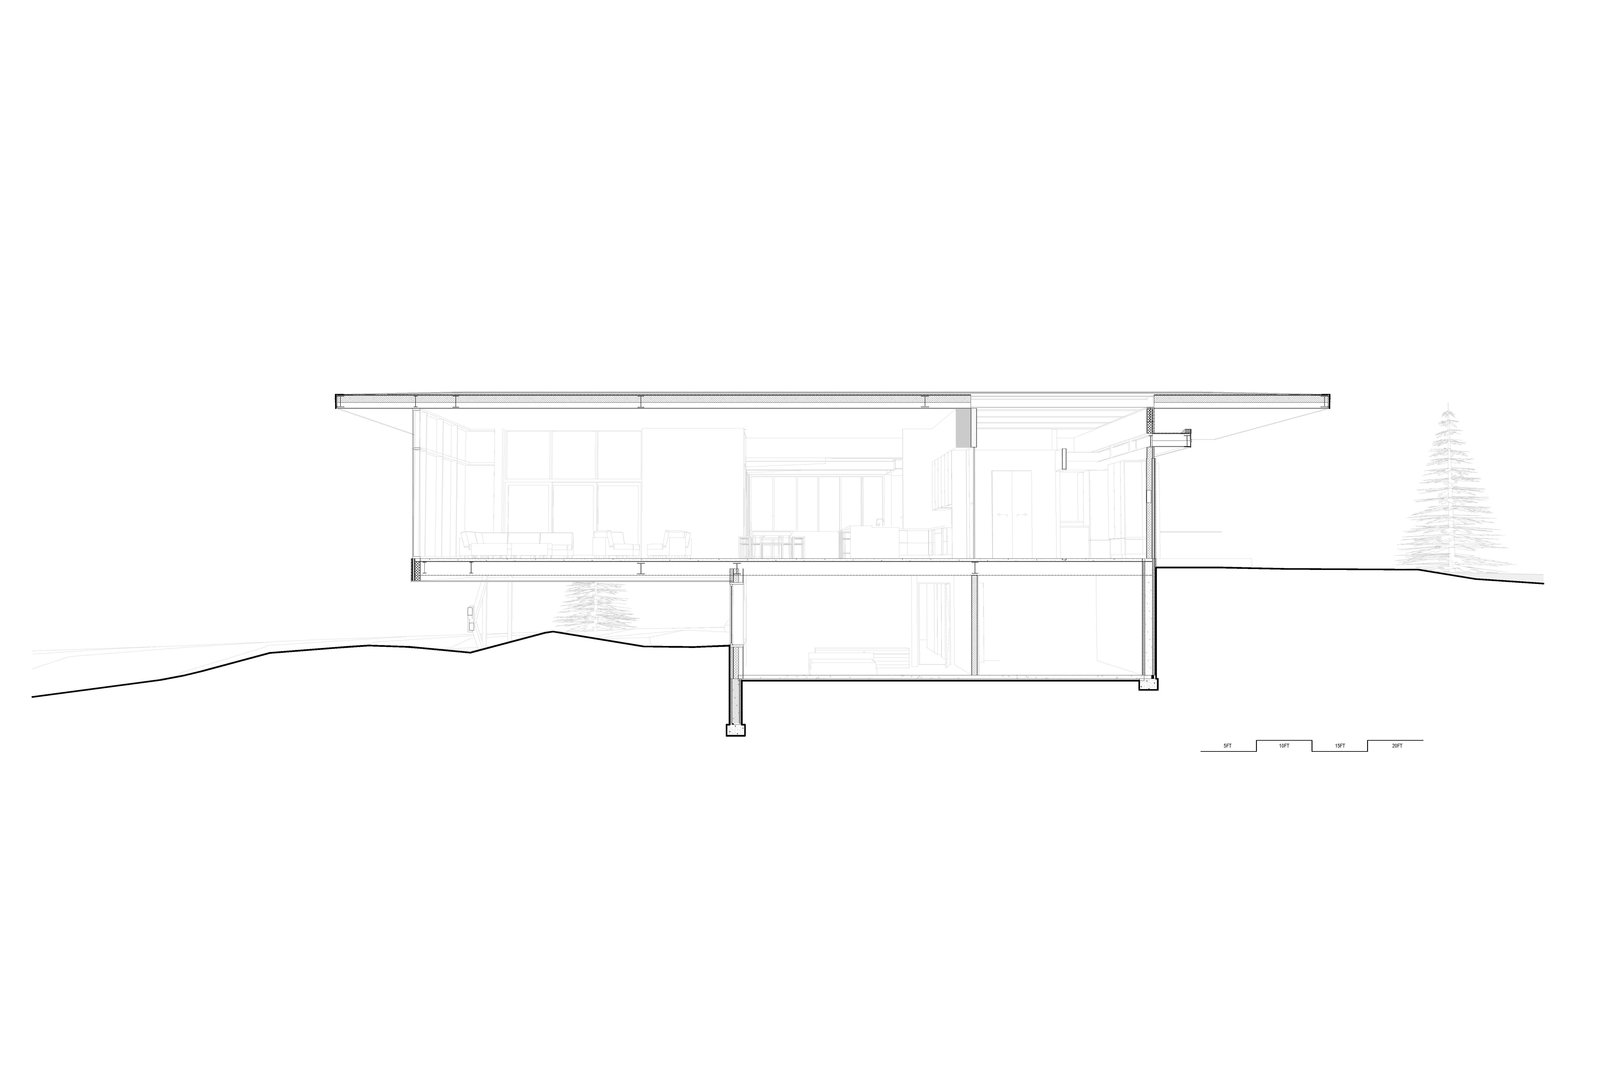 cross-sectional perspective drawings of main living space